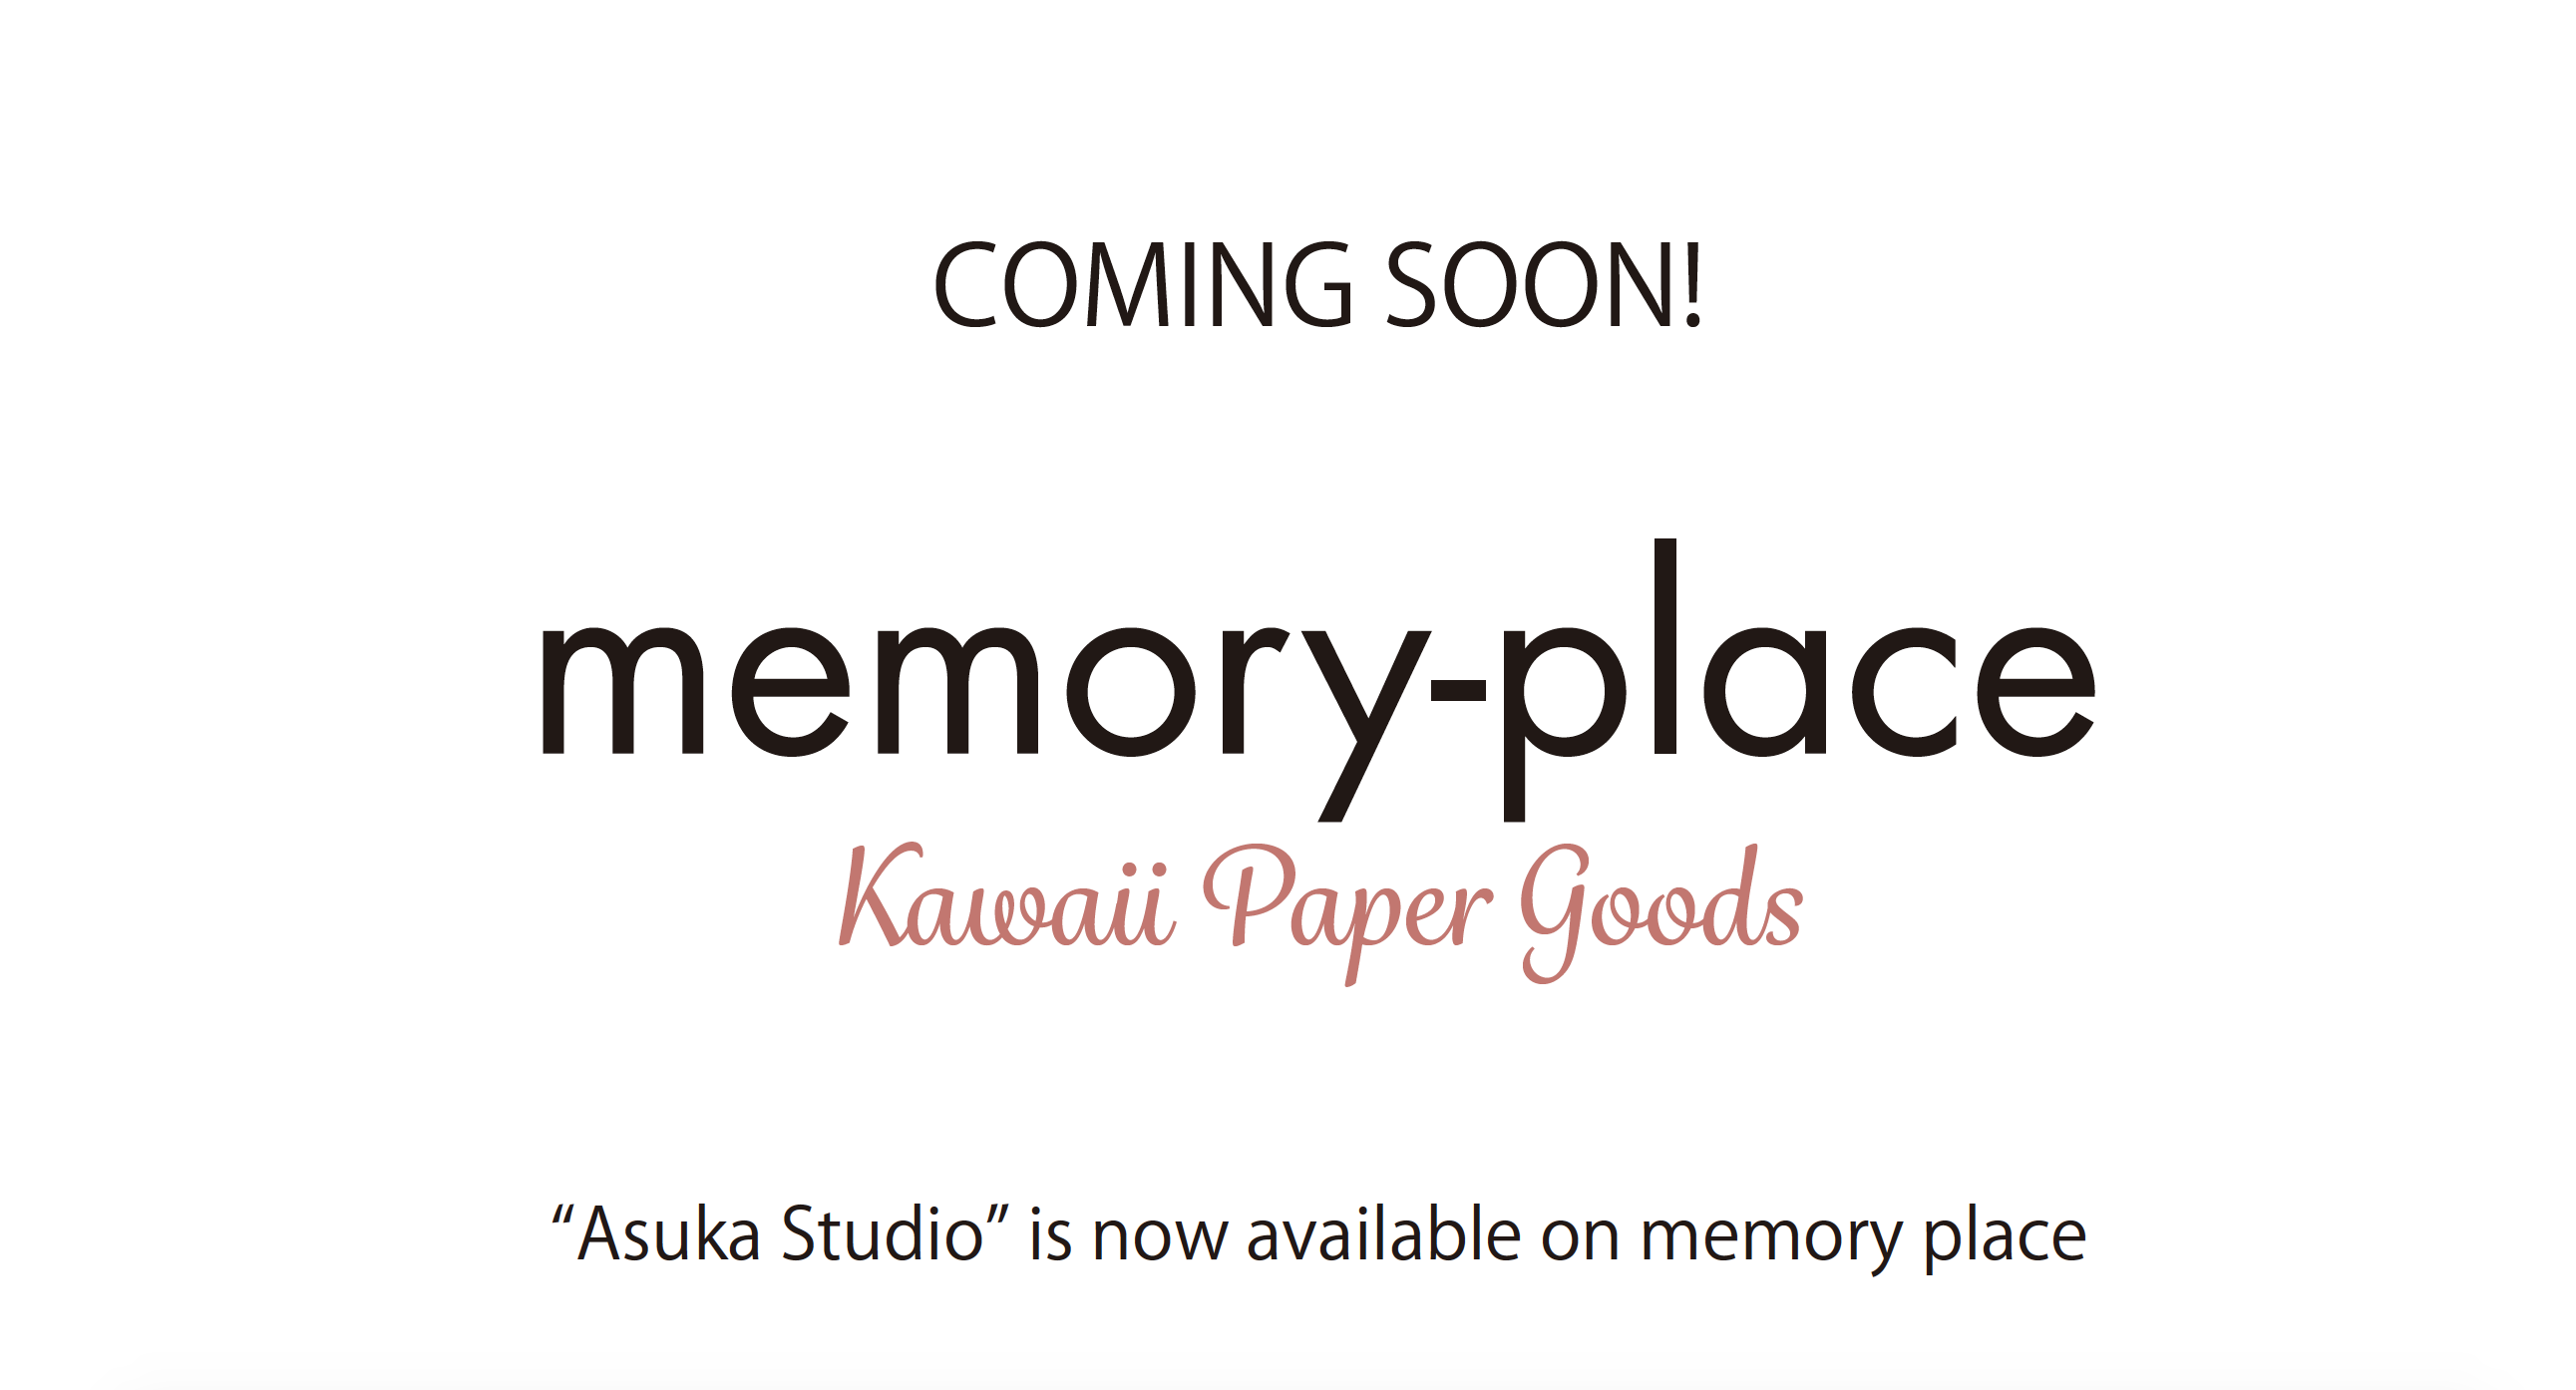 memory-place coming soon